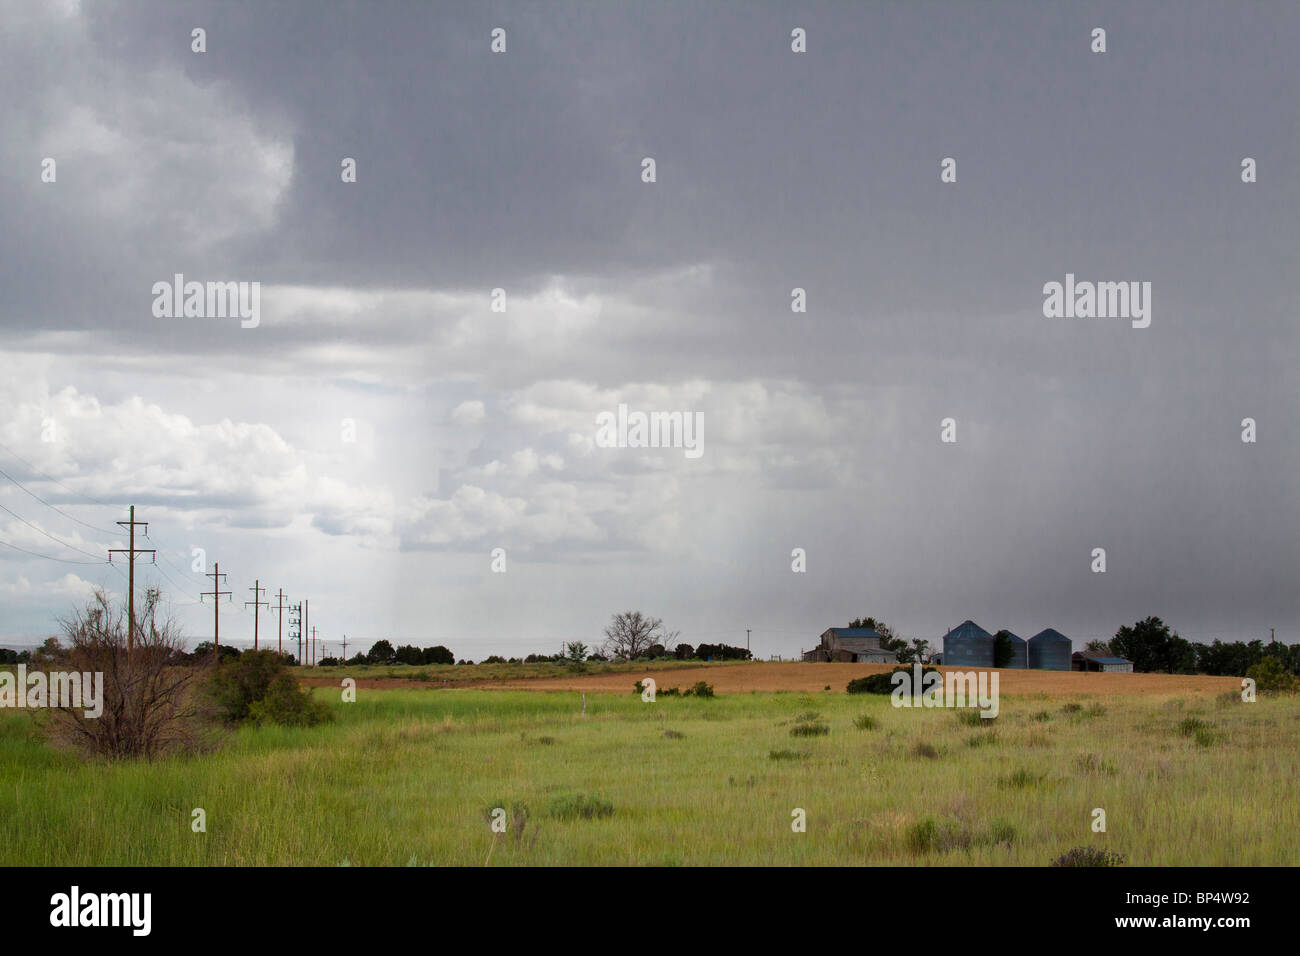 Rain pouring down onto farmhouse and silos in a thunder storm in rural farmland of southwest Colorado - Stock Image